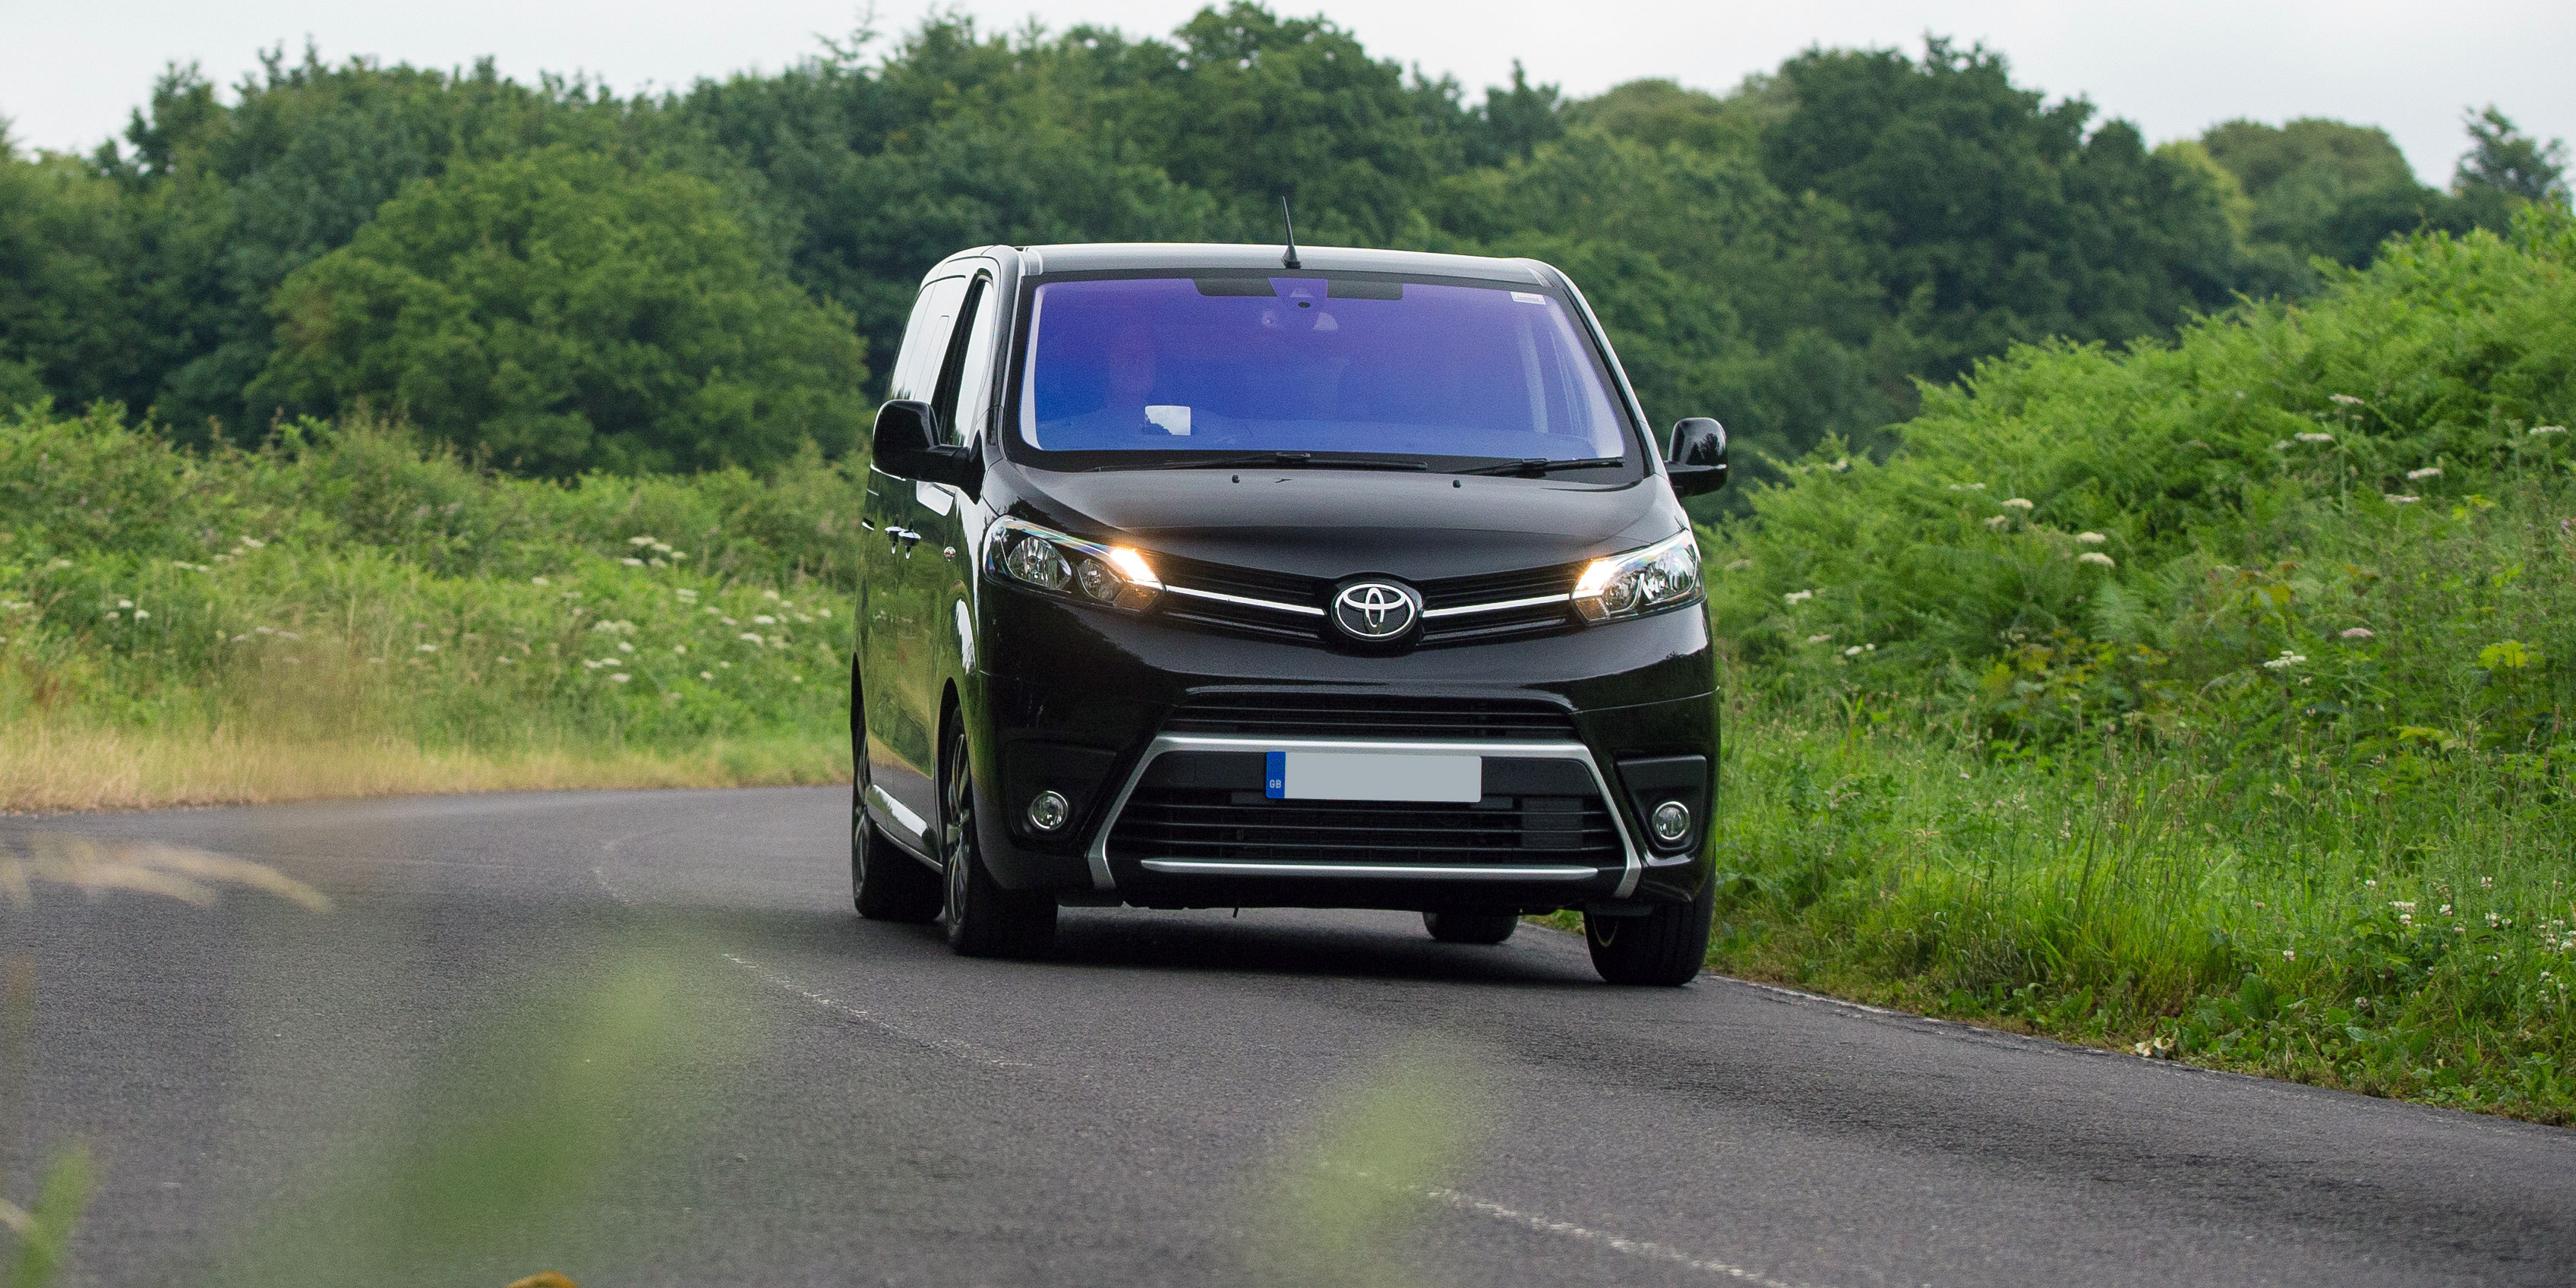 Toyota Proace Verso Specifications Prices Carwow